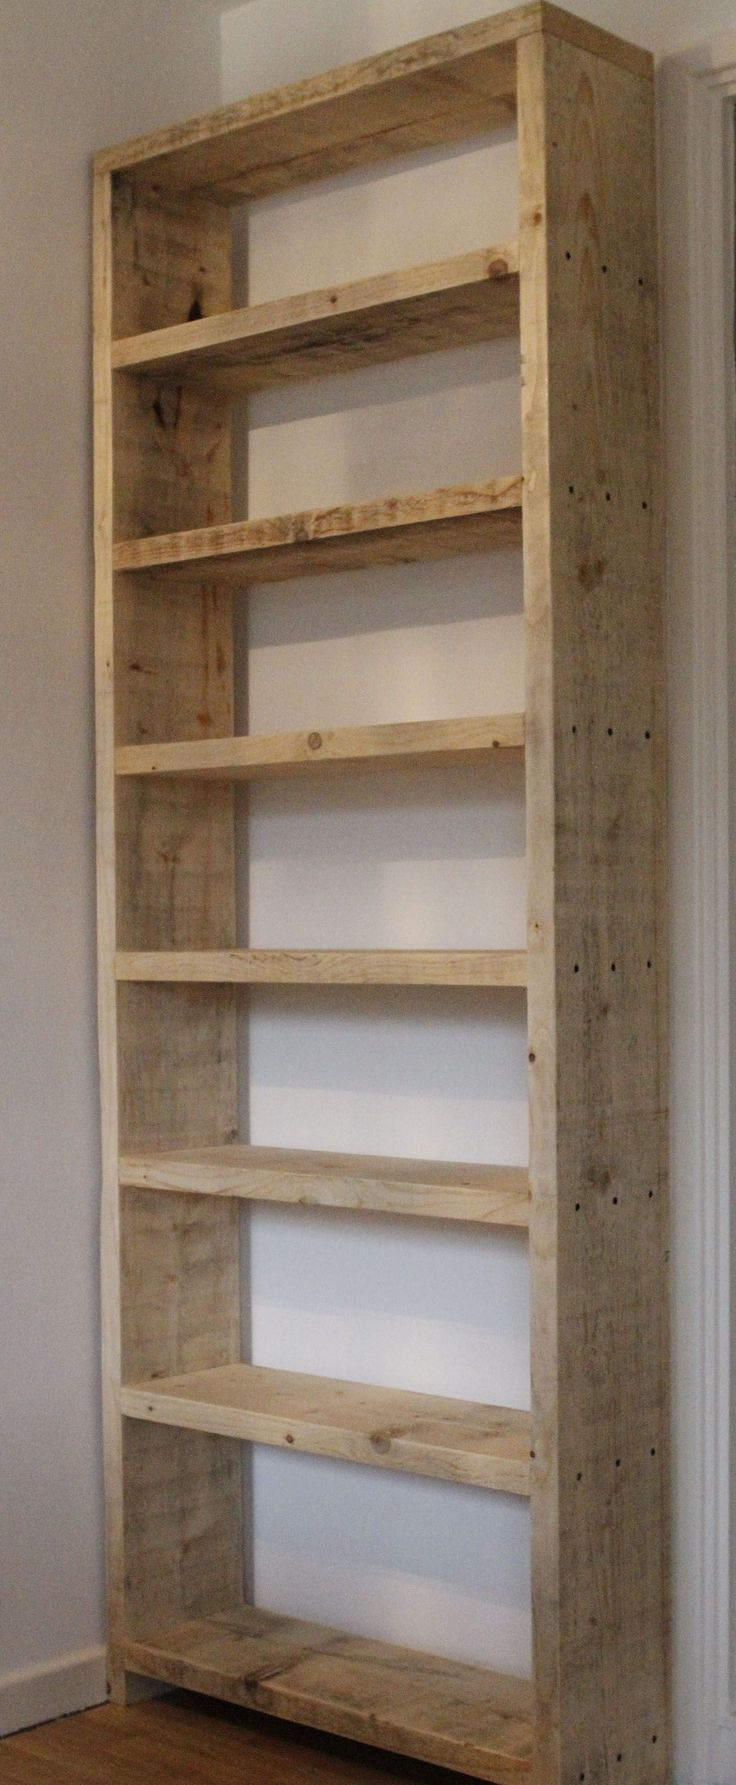 Basic wood shelves from 2x10 boards.